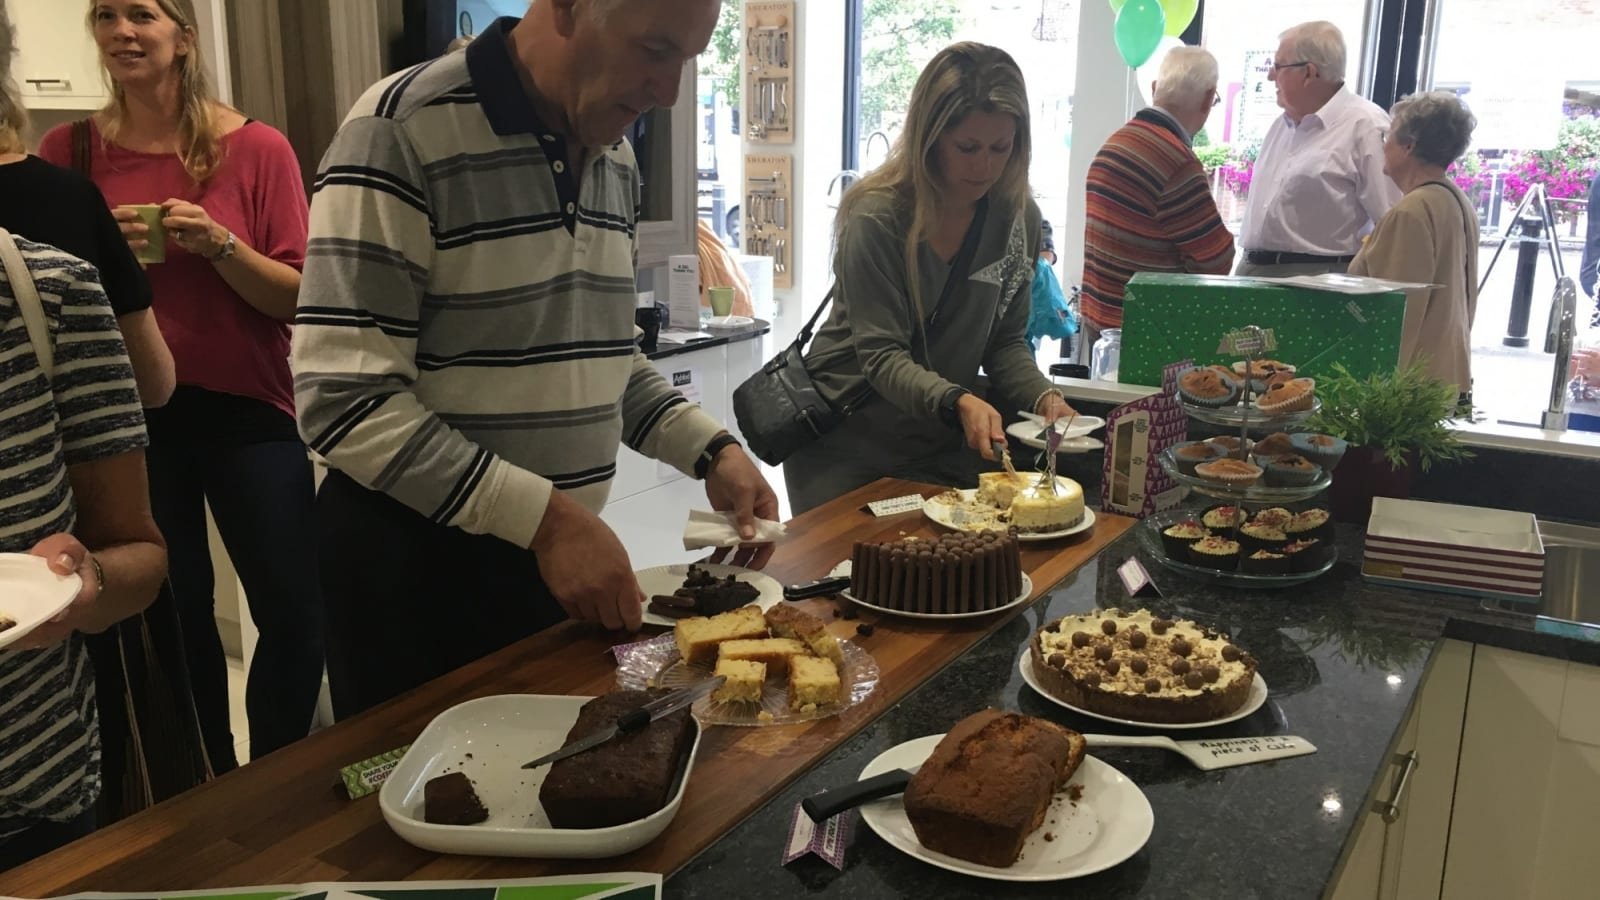 Macmillan Coffee Morning, Farnham Common